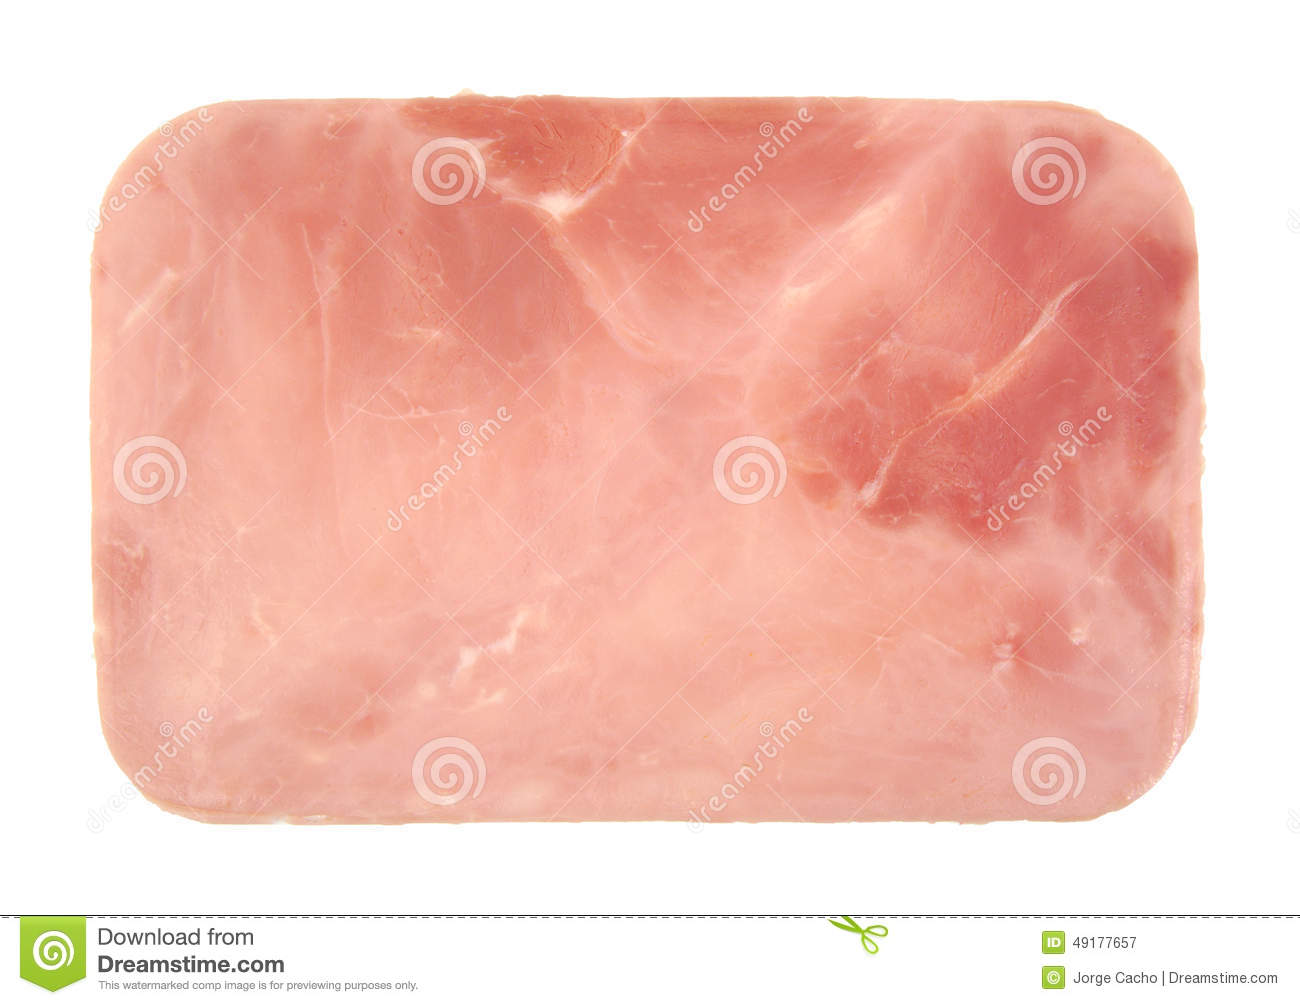 Closeup Of One Cooked And Boiled Ham Sausage Slice Stock Photo - Image ...